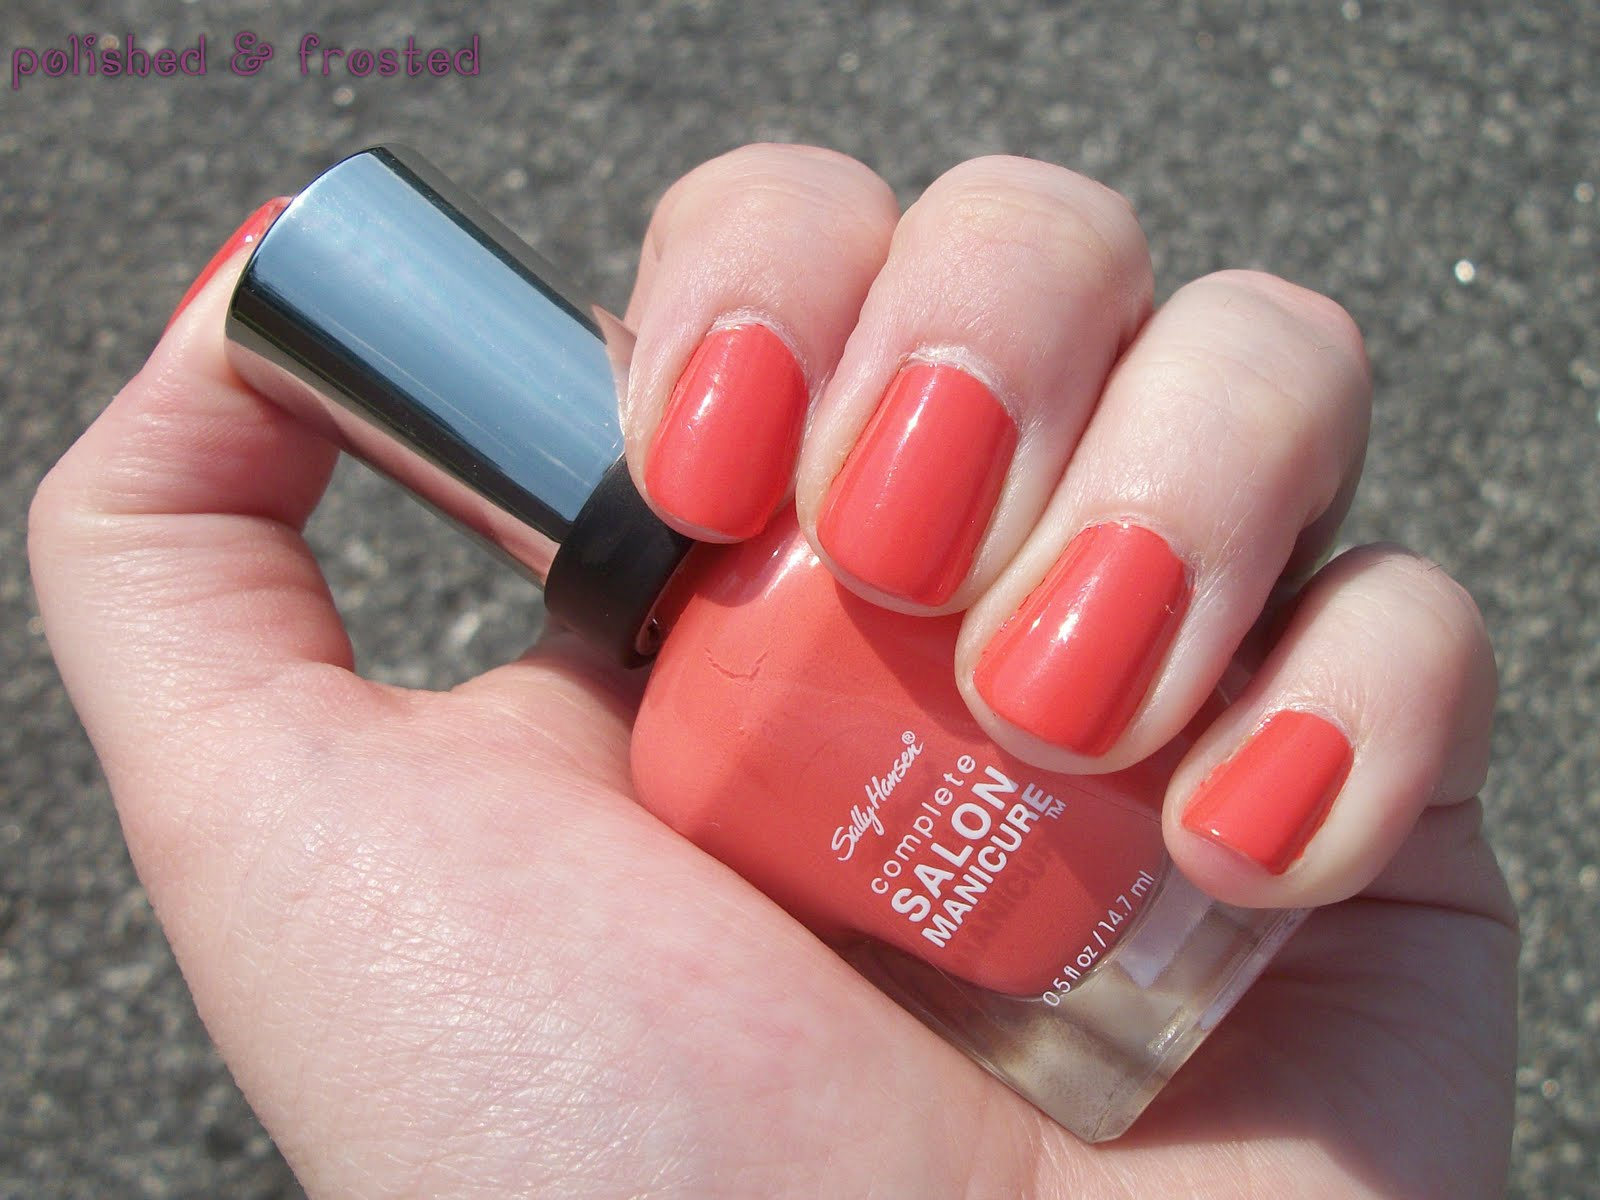 polished amp frosted sally hansen complete salon manicure